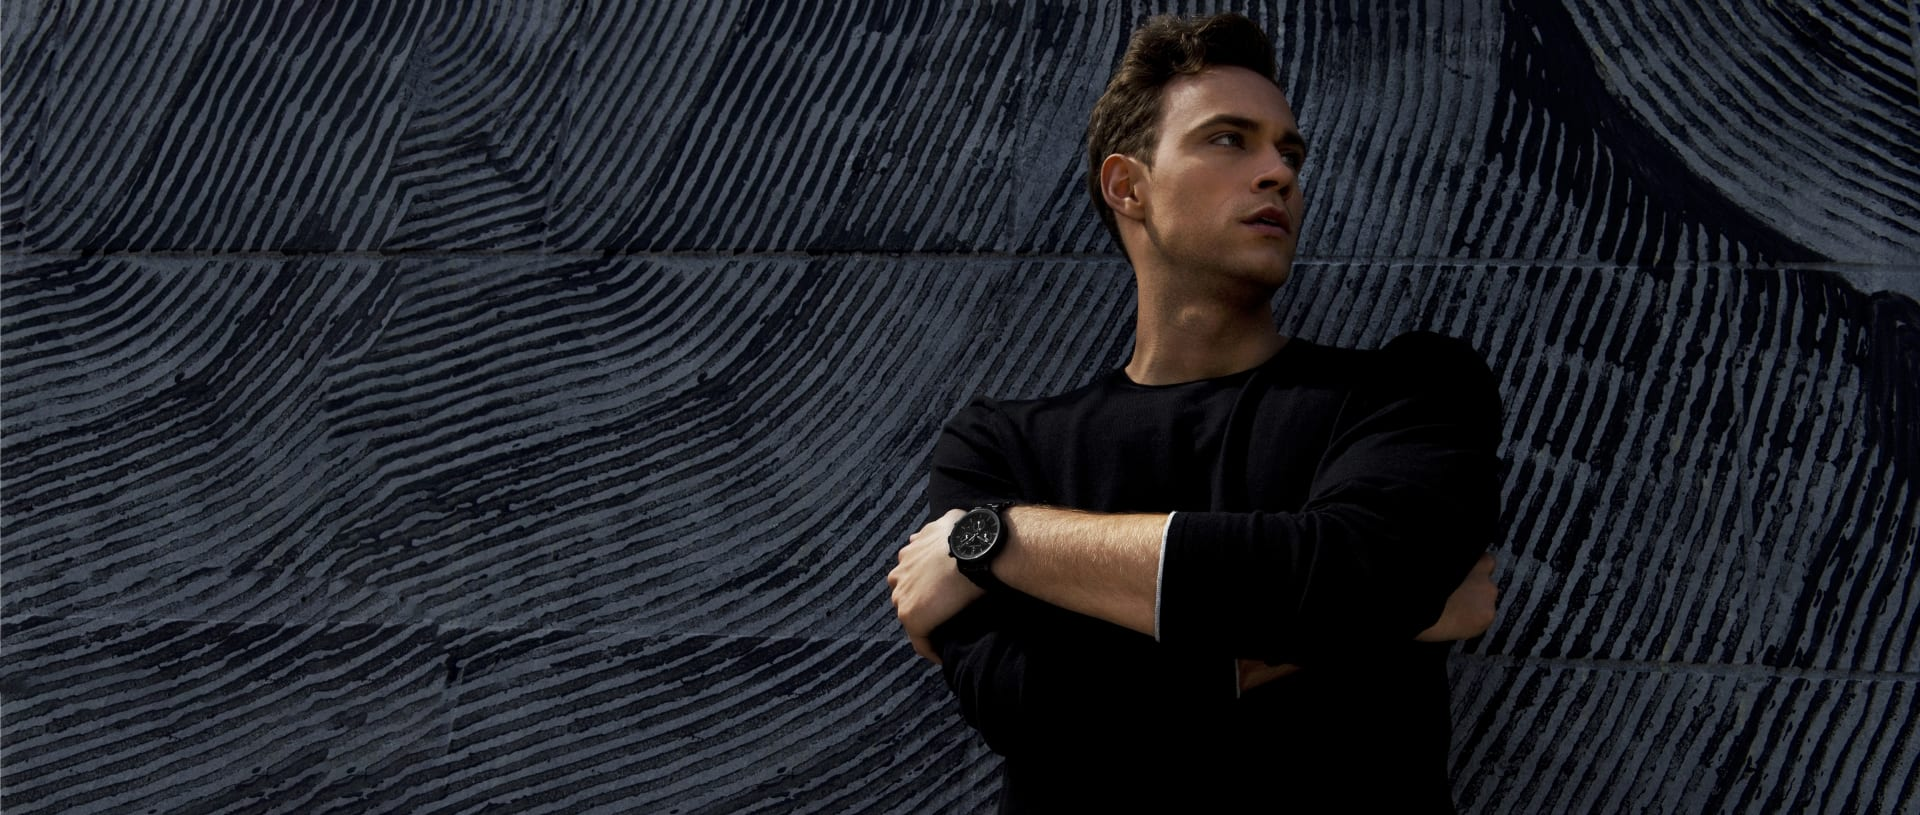 DAVIDOFF watches model in front of dark wall